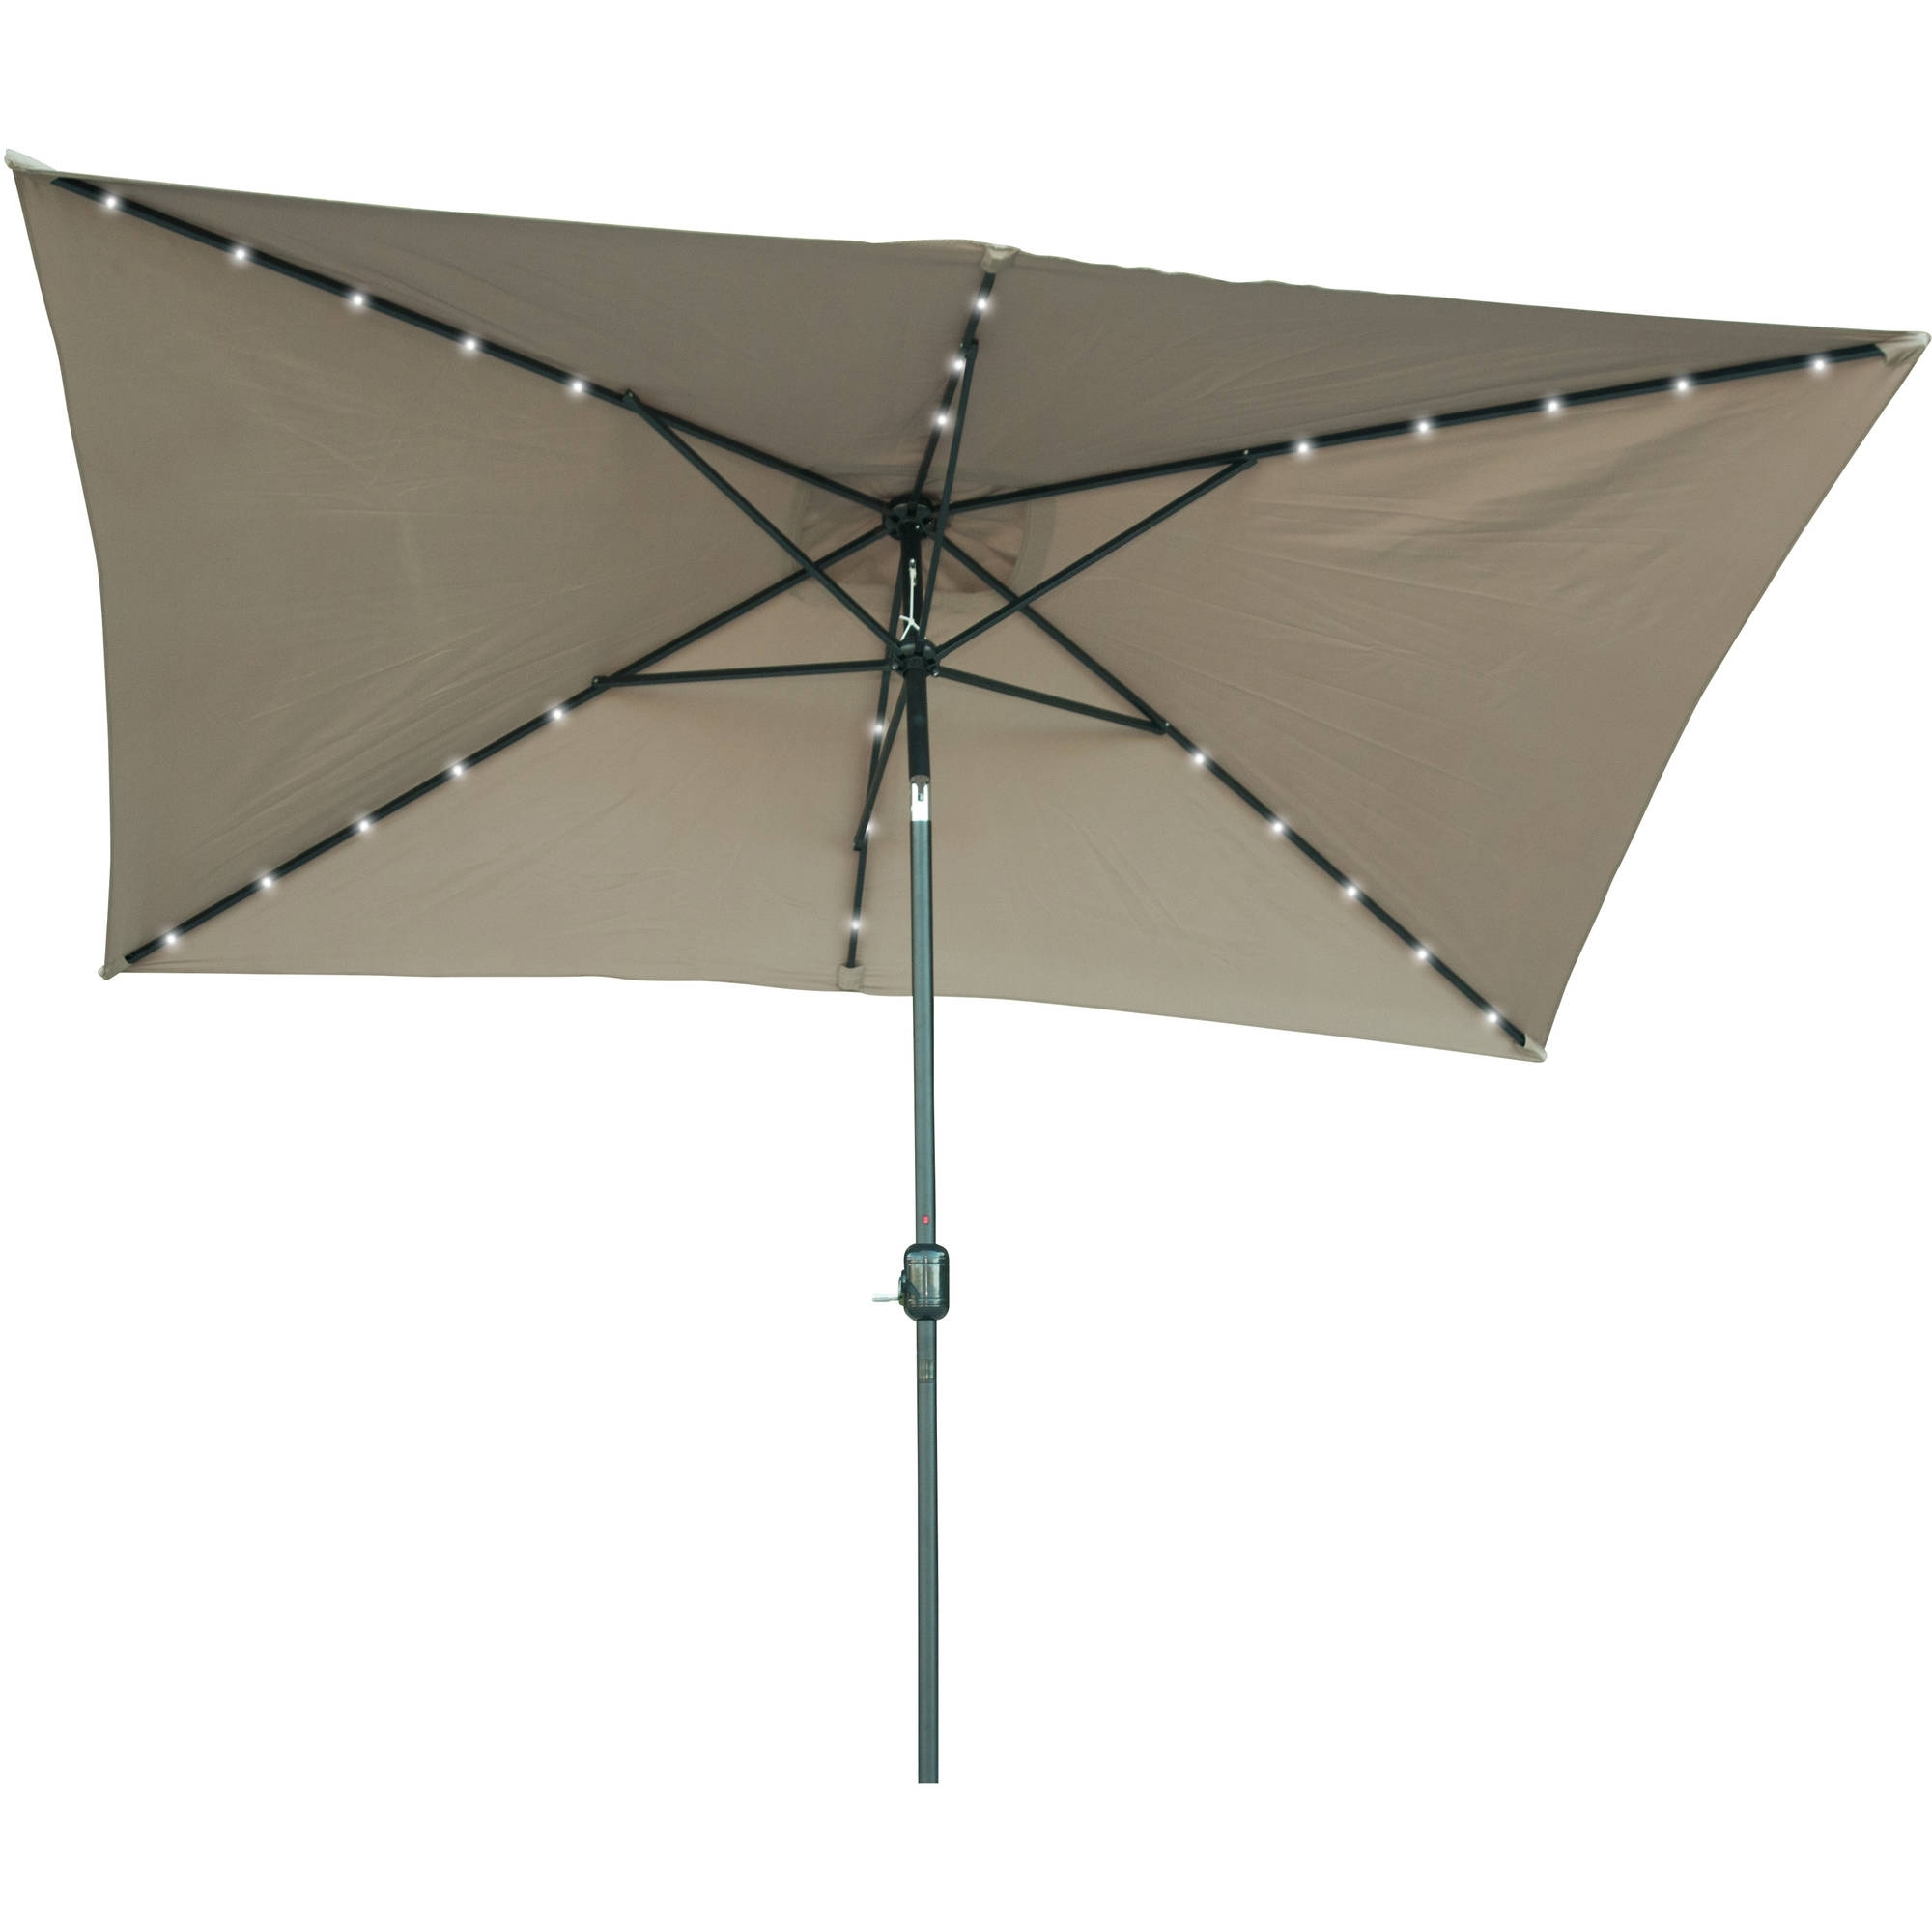 Well Liked Patio Umbrellas With Solar Led Lights Inside Rectangular Solar Powered Led Lighted Patio Umbrella – 10' X (View 11 of 20)